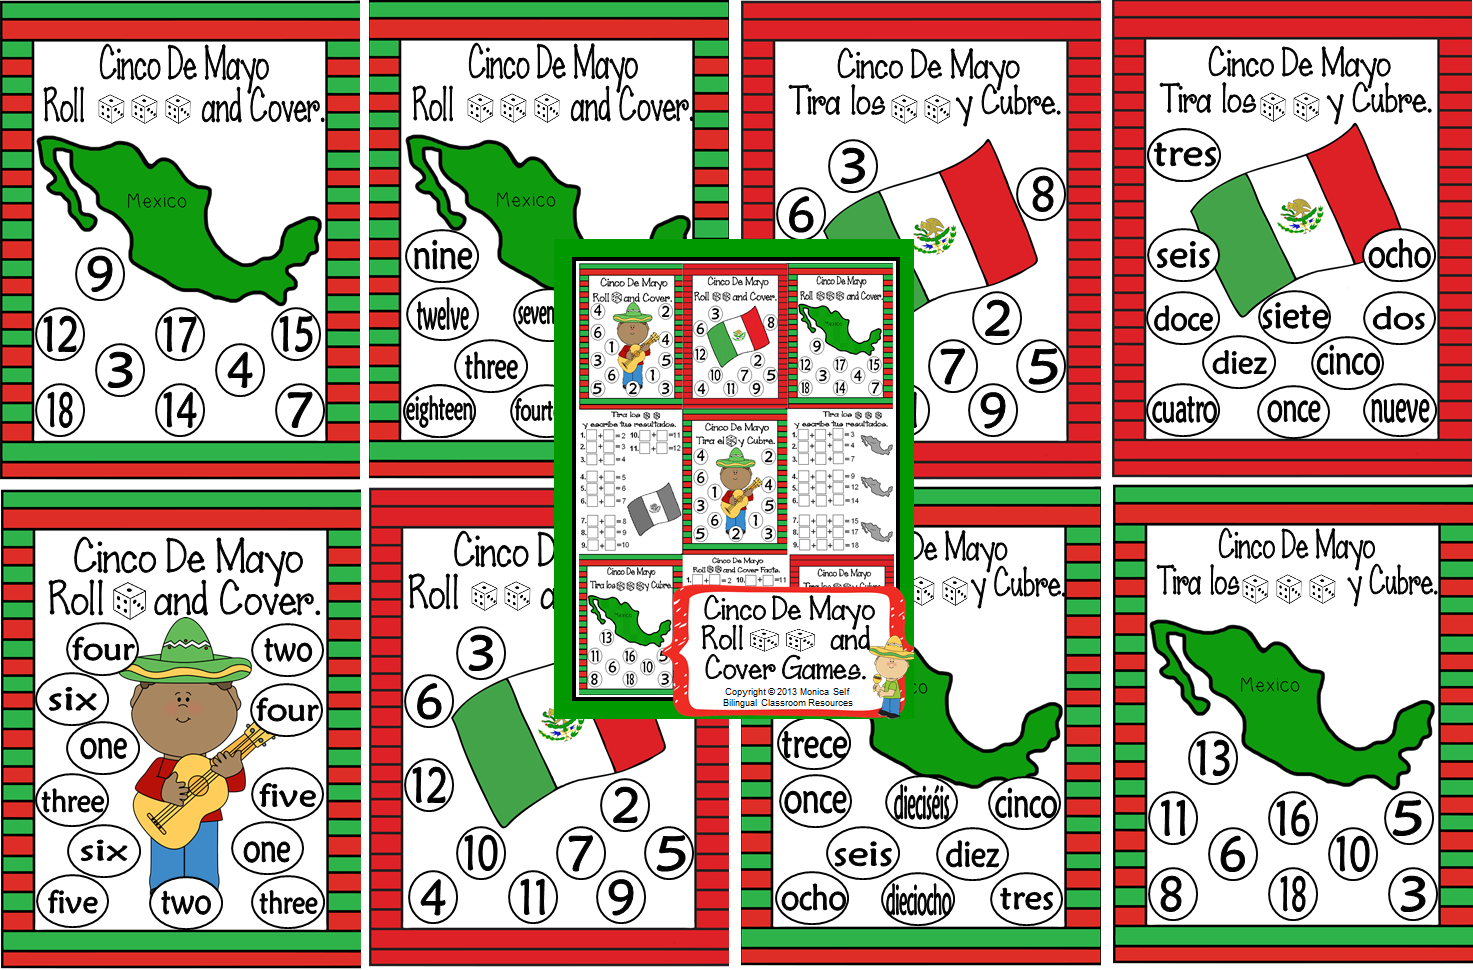 http://www.teacherspayteachers.com/Product/Cinco-De-Mayo-Roll-and-Cover-Games-677544